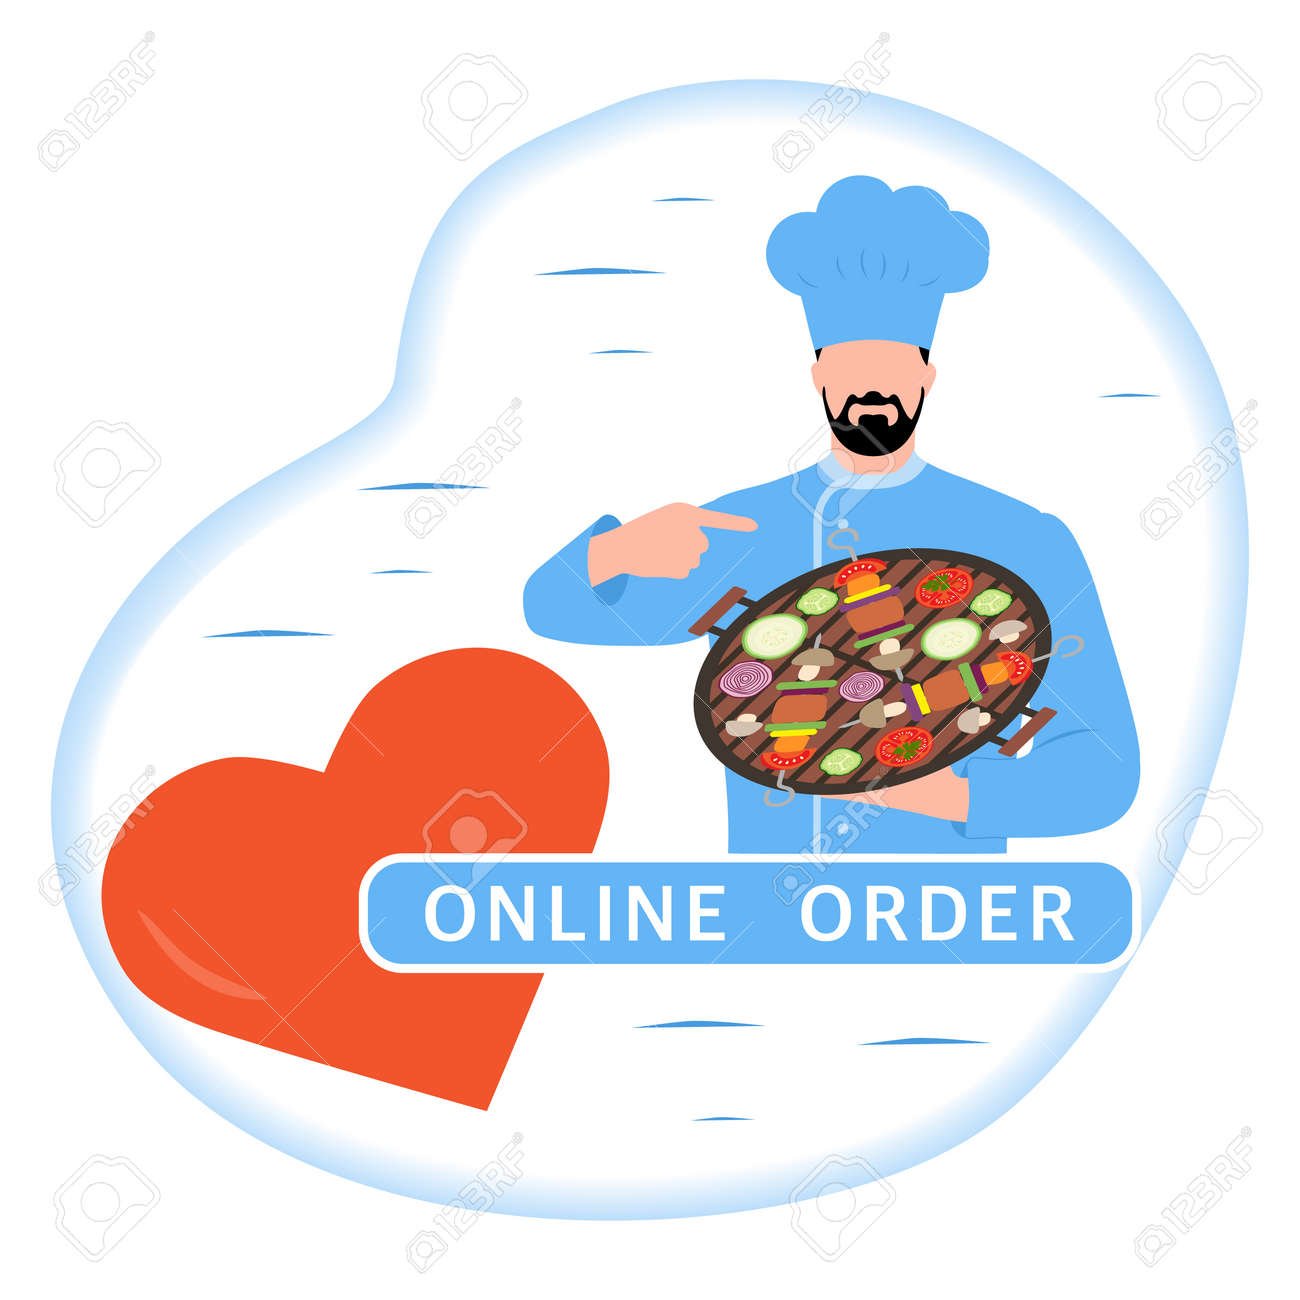 Vector illustration Online order. Chef offers to grill food. Ordering bbq food delivery online. Advertising of restaurant menu. Delivery at office or home. Tasty meal. Design for print - 170249985